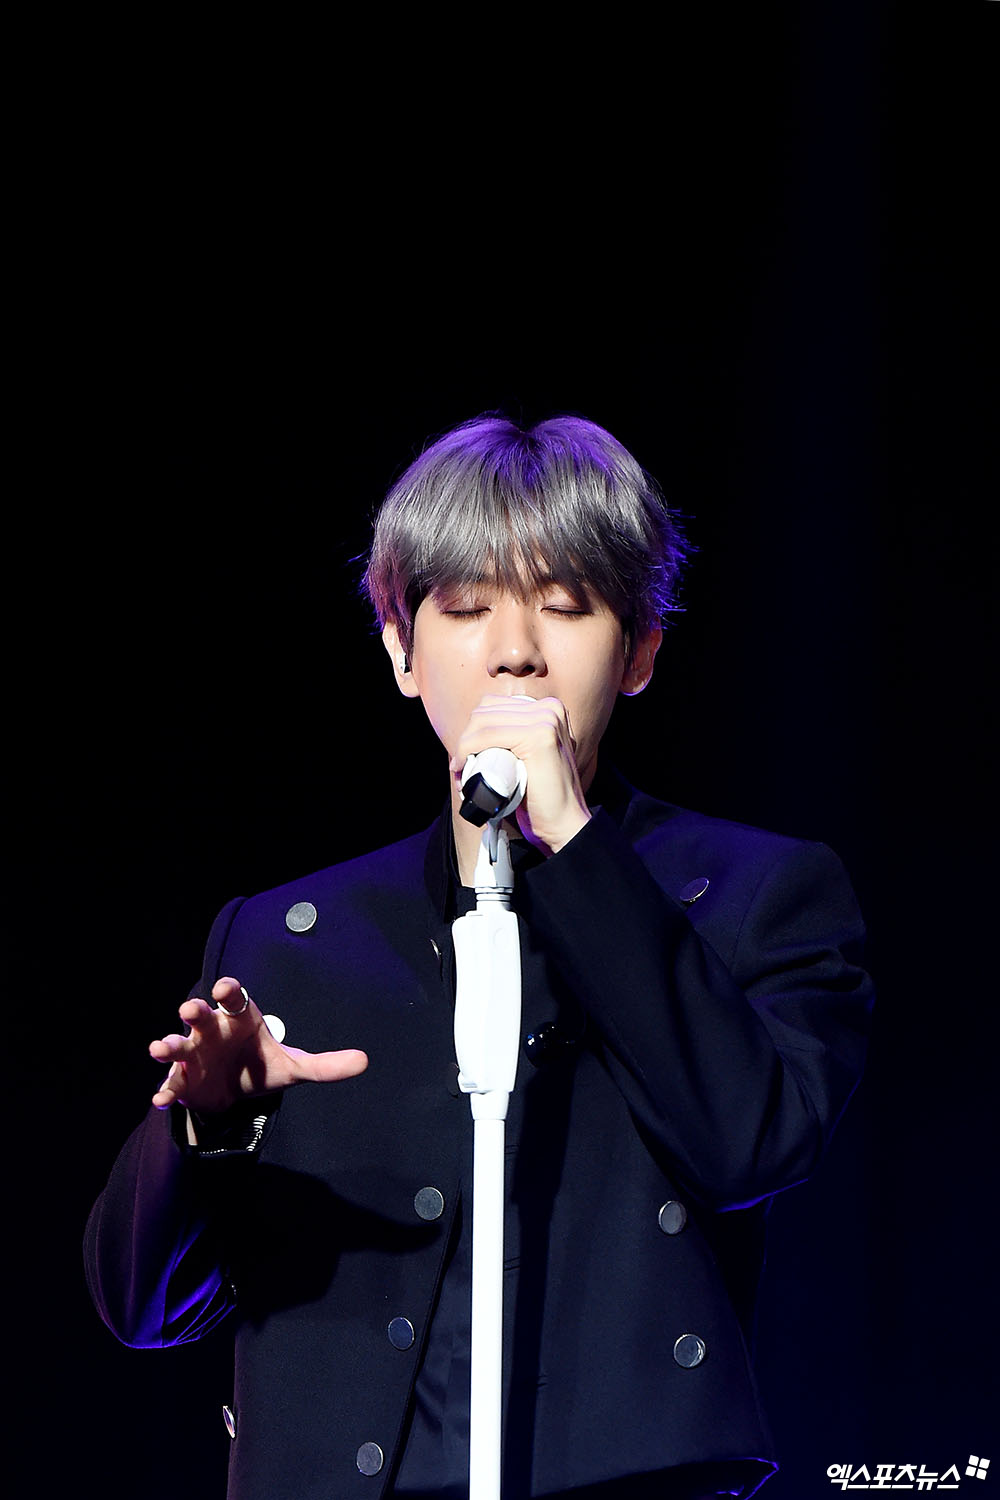 <p>10 days in Seoul, Gangnam-GU SAC Art Hall in the group EXO(EXO) Baekhyuns solo album City Lights released in the anniversary showcase took place.</p><p>EXOs main vocal Baekhyun this is the first solo City Lightsis a trendy atmosphere with a total of 6 songs records. The title is UN Villageto the romantic mood of the R&B song is.</p><p>2012 debut as EXO is a debut after all the way to high popularity has been. Quintuple a million seller for records here. Baekhyun is all this performance on a background of fans there and we talked. Baekhyun is the EXO from ten million to a cumulative sales record we do well rather than a reality as fans if there is no I cantrecord said.</p><p>Fans get that many more want to answer is Can You Hear My Heart? The size is Baekhyuns explanation. Always something more the Lord wanted to he think after the way this SNS comment on the live broadcast of the communication was.</p><p>Baekhyun is the fans and time spent the usual look of wonder that was like afew days body created in the public or nowadays the body is a comment, please, and to exercise all wondering Can kids. Then to answer your questions in order 1 dimension as the thought was, I then show if notwas. So YouTube is a good platform with the fans to find there werea few days a YouTube channel and this blog to raise said the reason. Now is this just have been posted, but add more variety of content to be featured.</p><p>7 years beyond the EXO in the future to ask these many. Baekhyun is a members love now like Friends of each other, happy to do so if there would be. Members of the friendship if we get here never was,he emphatically said.</p><p>He said: Say Not eyes look like family what to think of the fact that there werea few days ahead of EXOs future is now as hard as anyone to empty and empty to the other member a message that can change the rigidity to keep and not going to go up to the bed,said Xiumin with a design for a military space for even indirectly mentioned. Or with